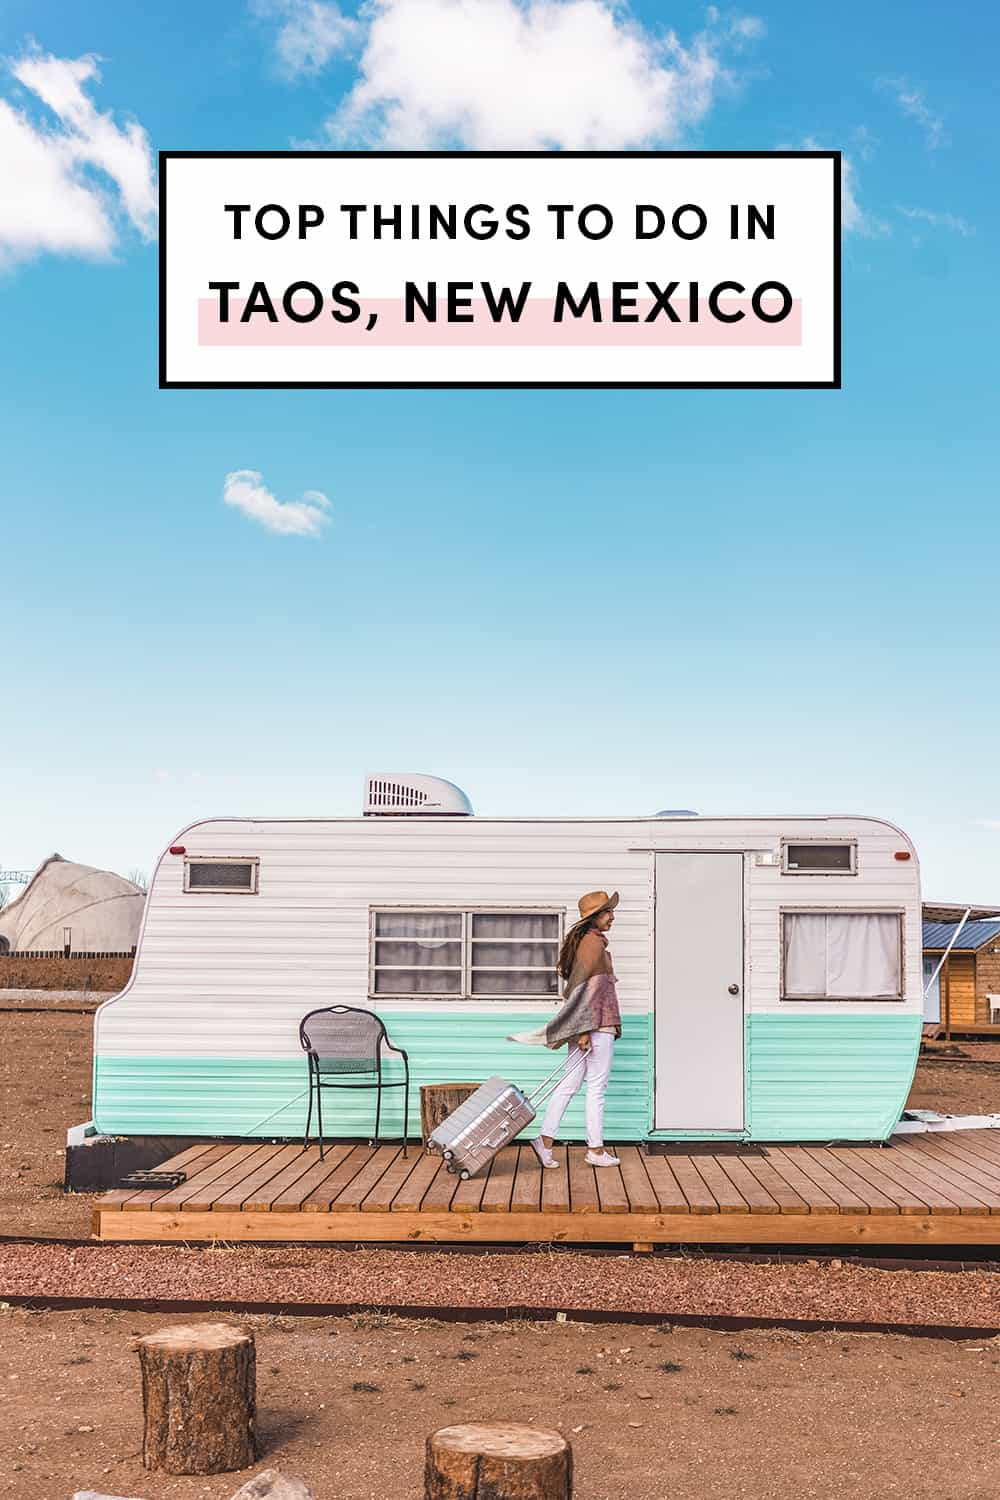 Top Things To Do in Taos New Mexico